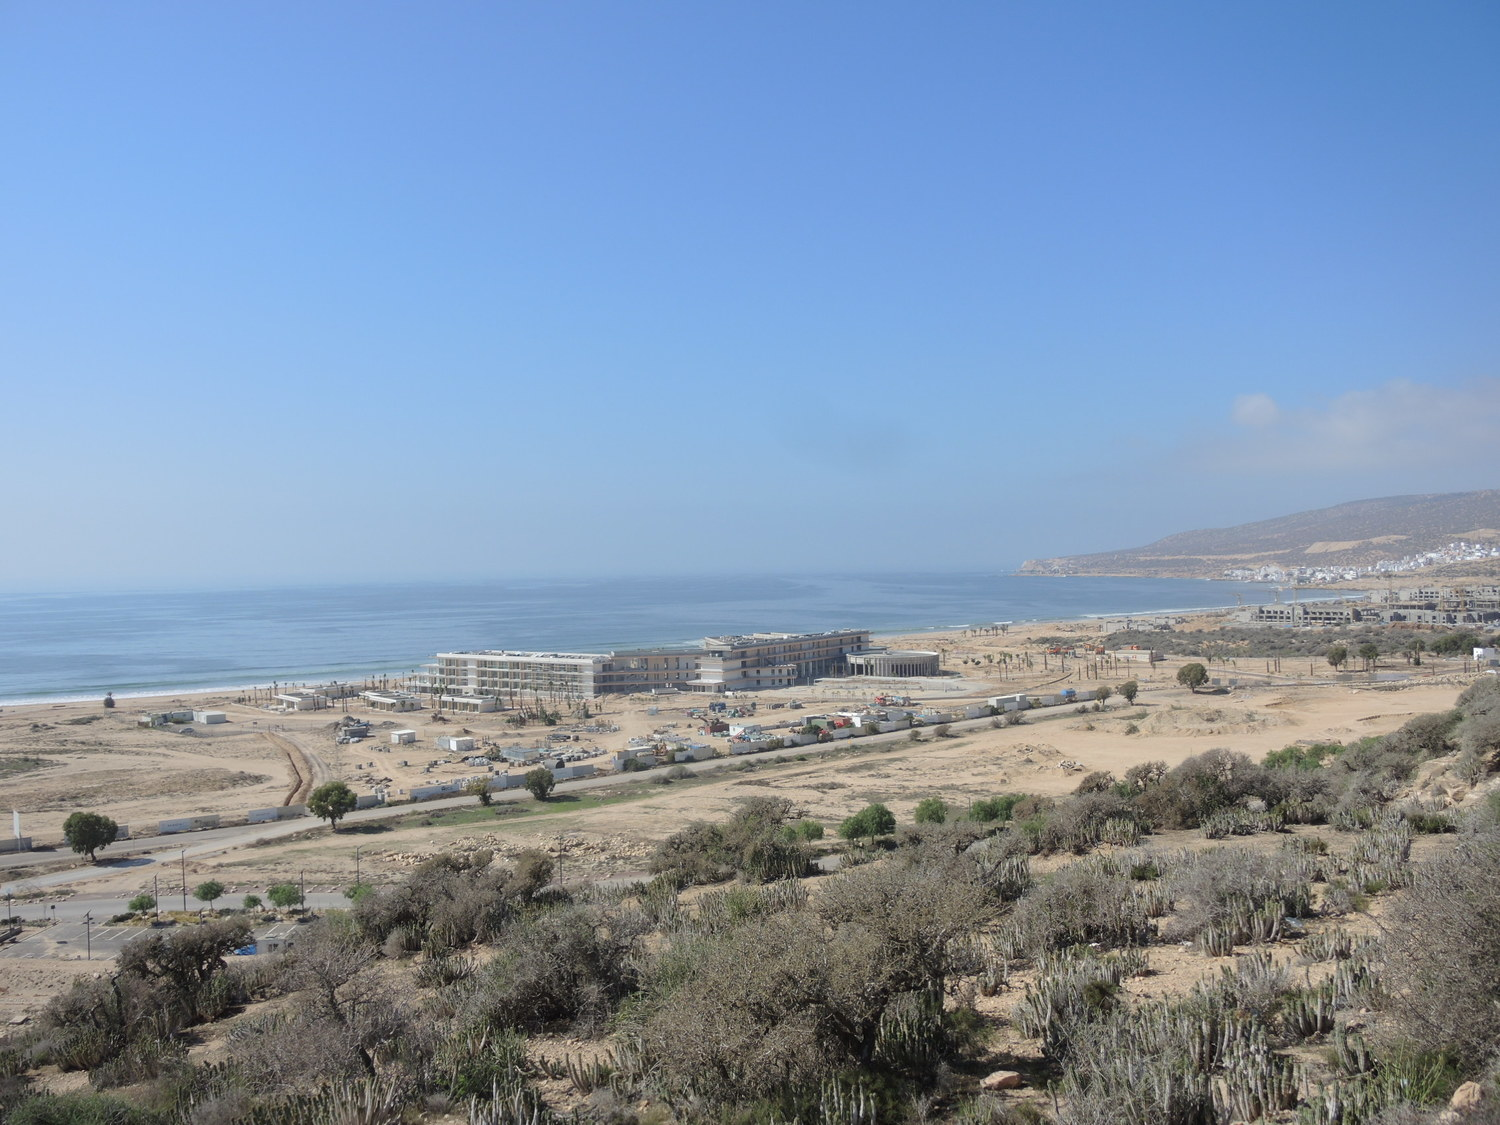 Construction sites in Taghazout